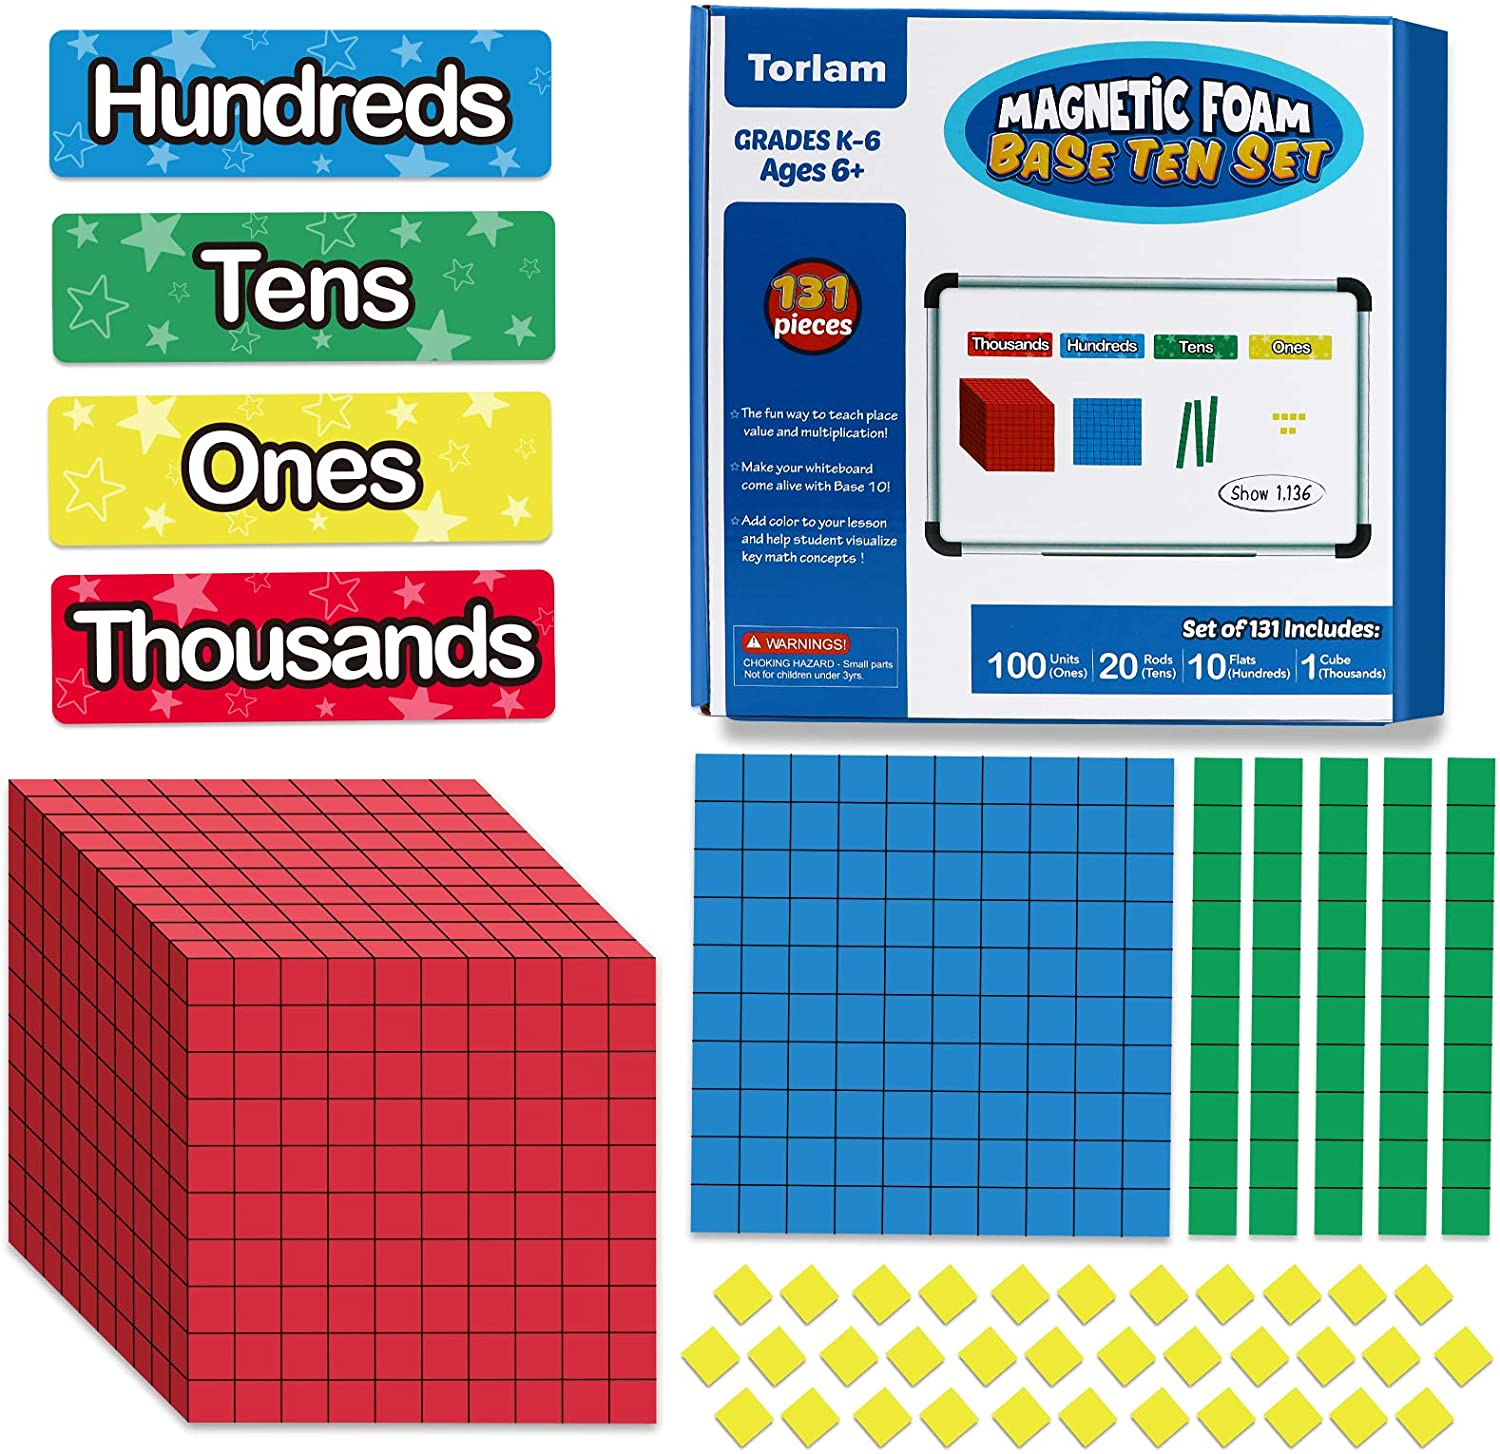 Torlam 135 PCS Magnetic Base Ten Blocks - Place Value Blocks -Math Manipulatives K-3 for Elementary Classroom, Number Blocks, Math Counters, Counting Cubes for Kids Math, Base 10 for 1st 2nd 3rd Grade